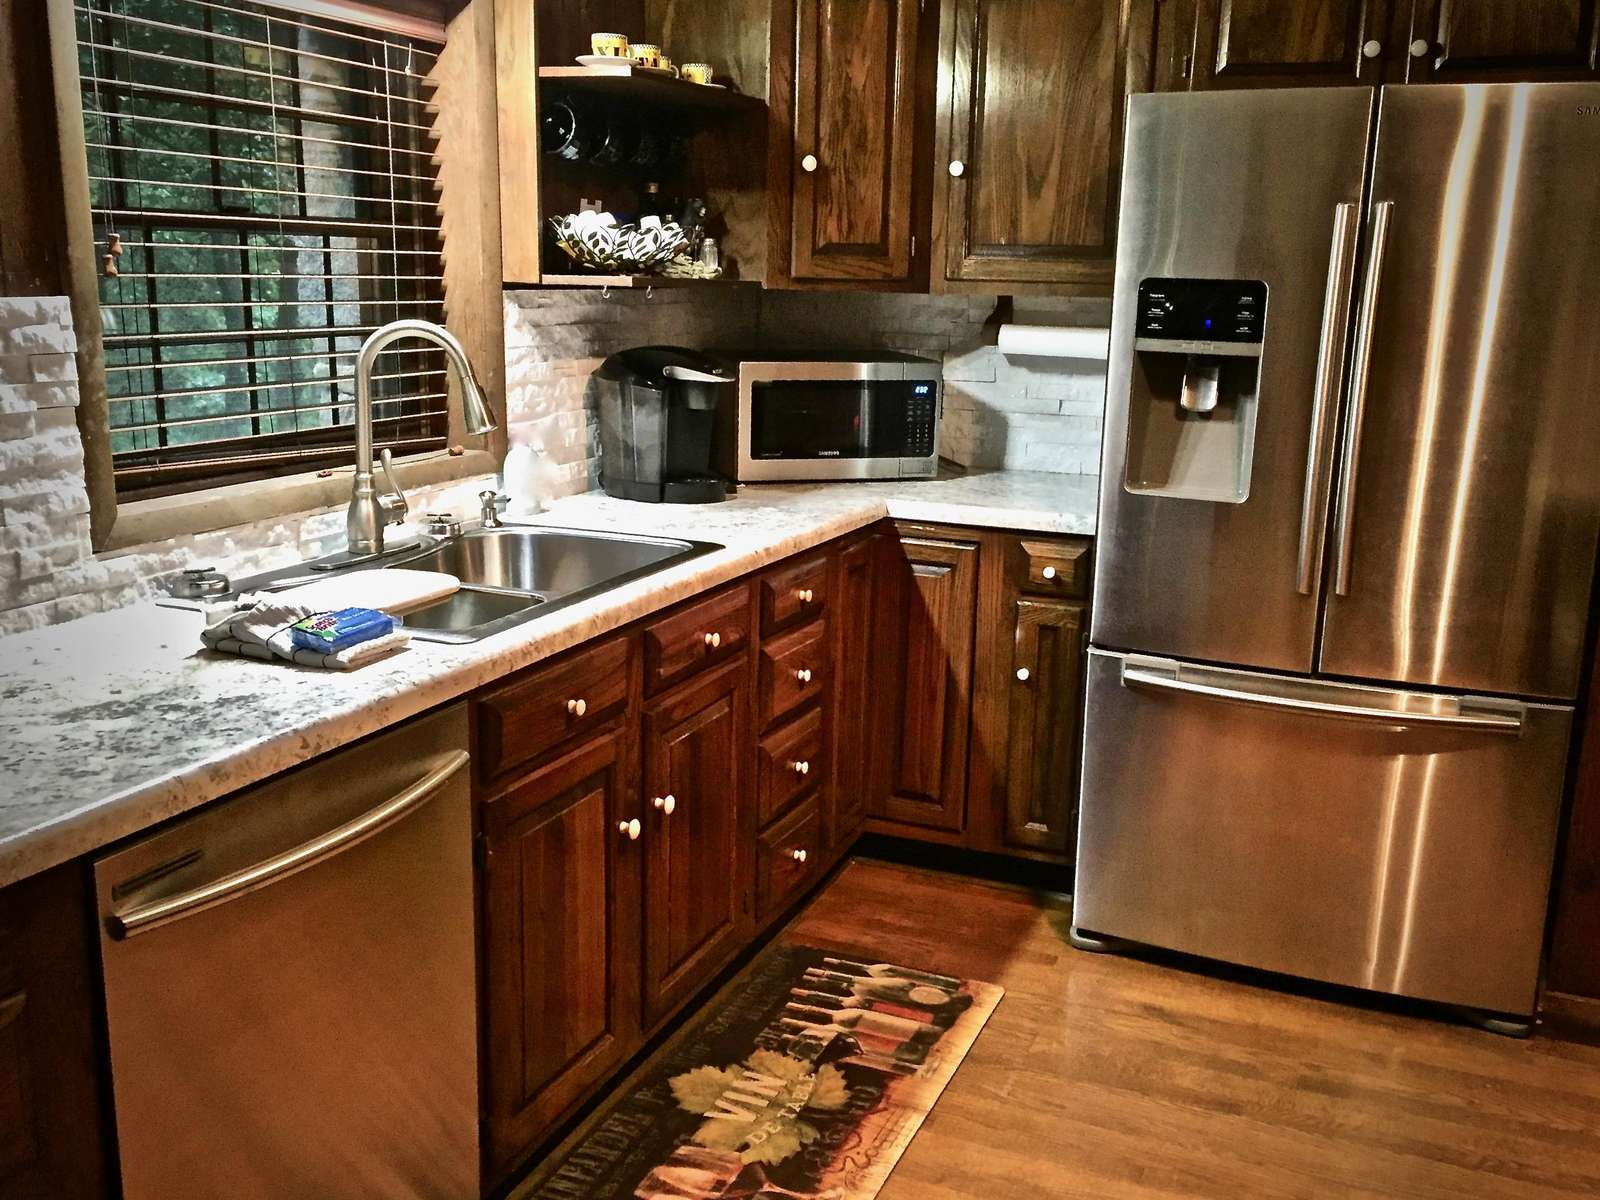 Upscale Stainless Appliances, and an upgraded Dishwasher (they did not have those in the olden days)